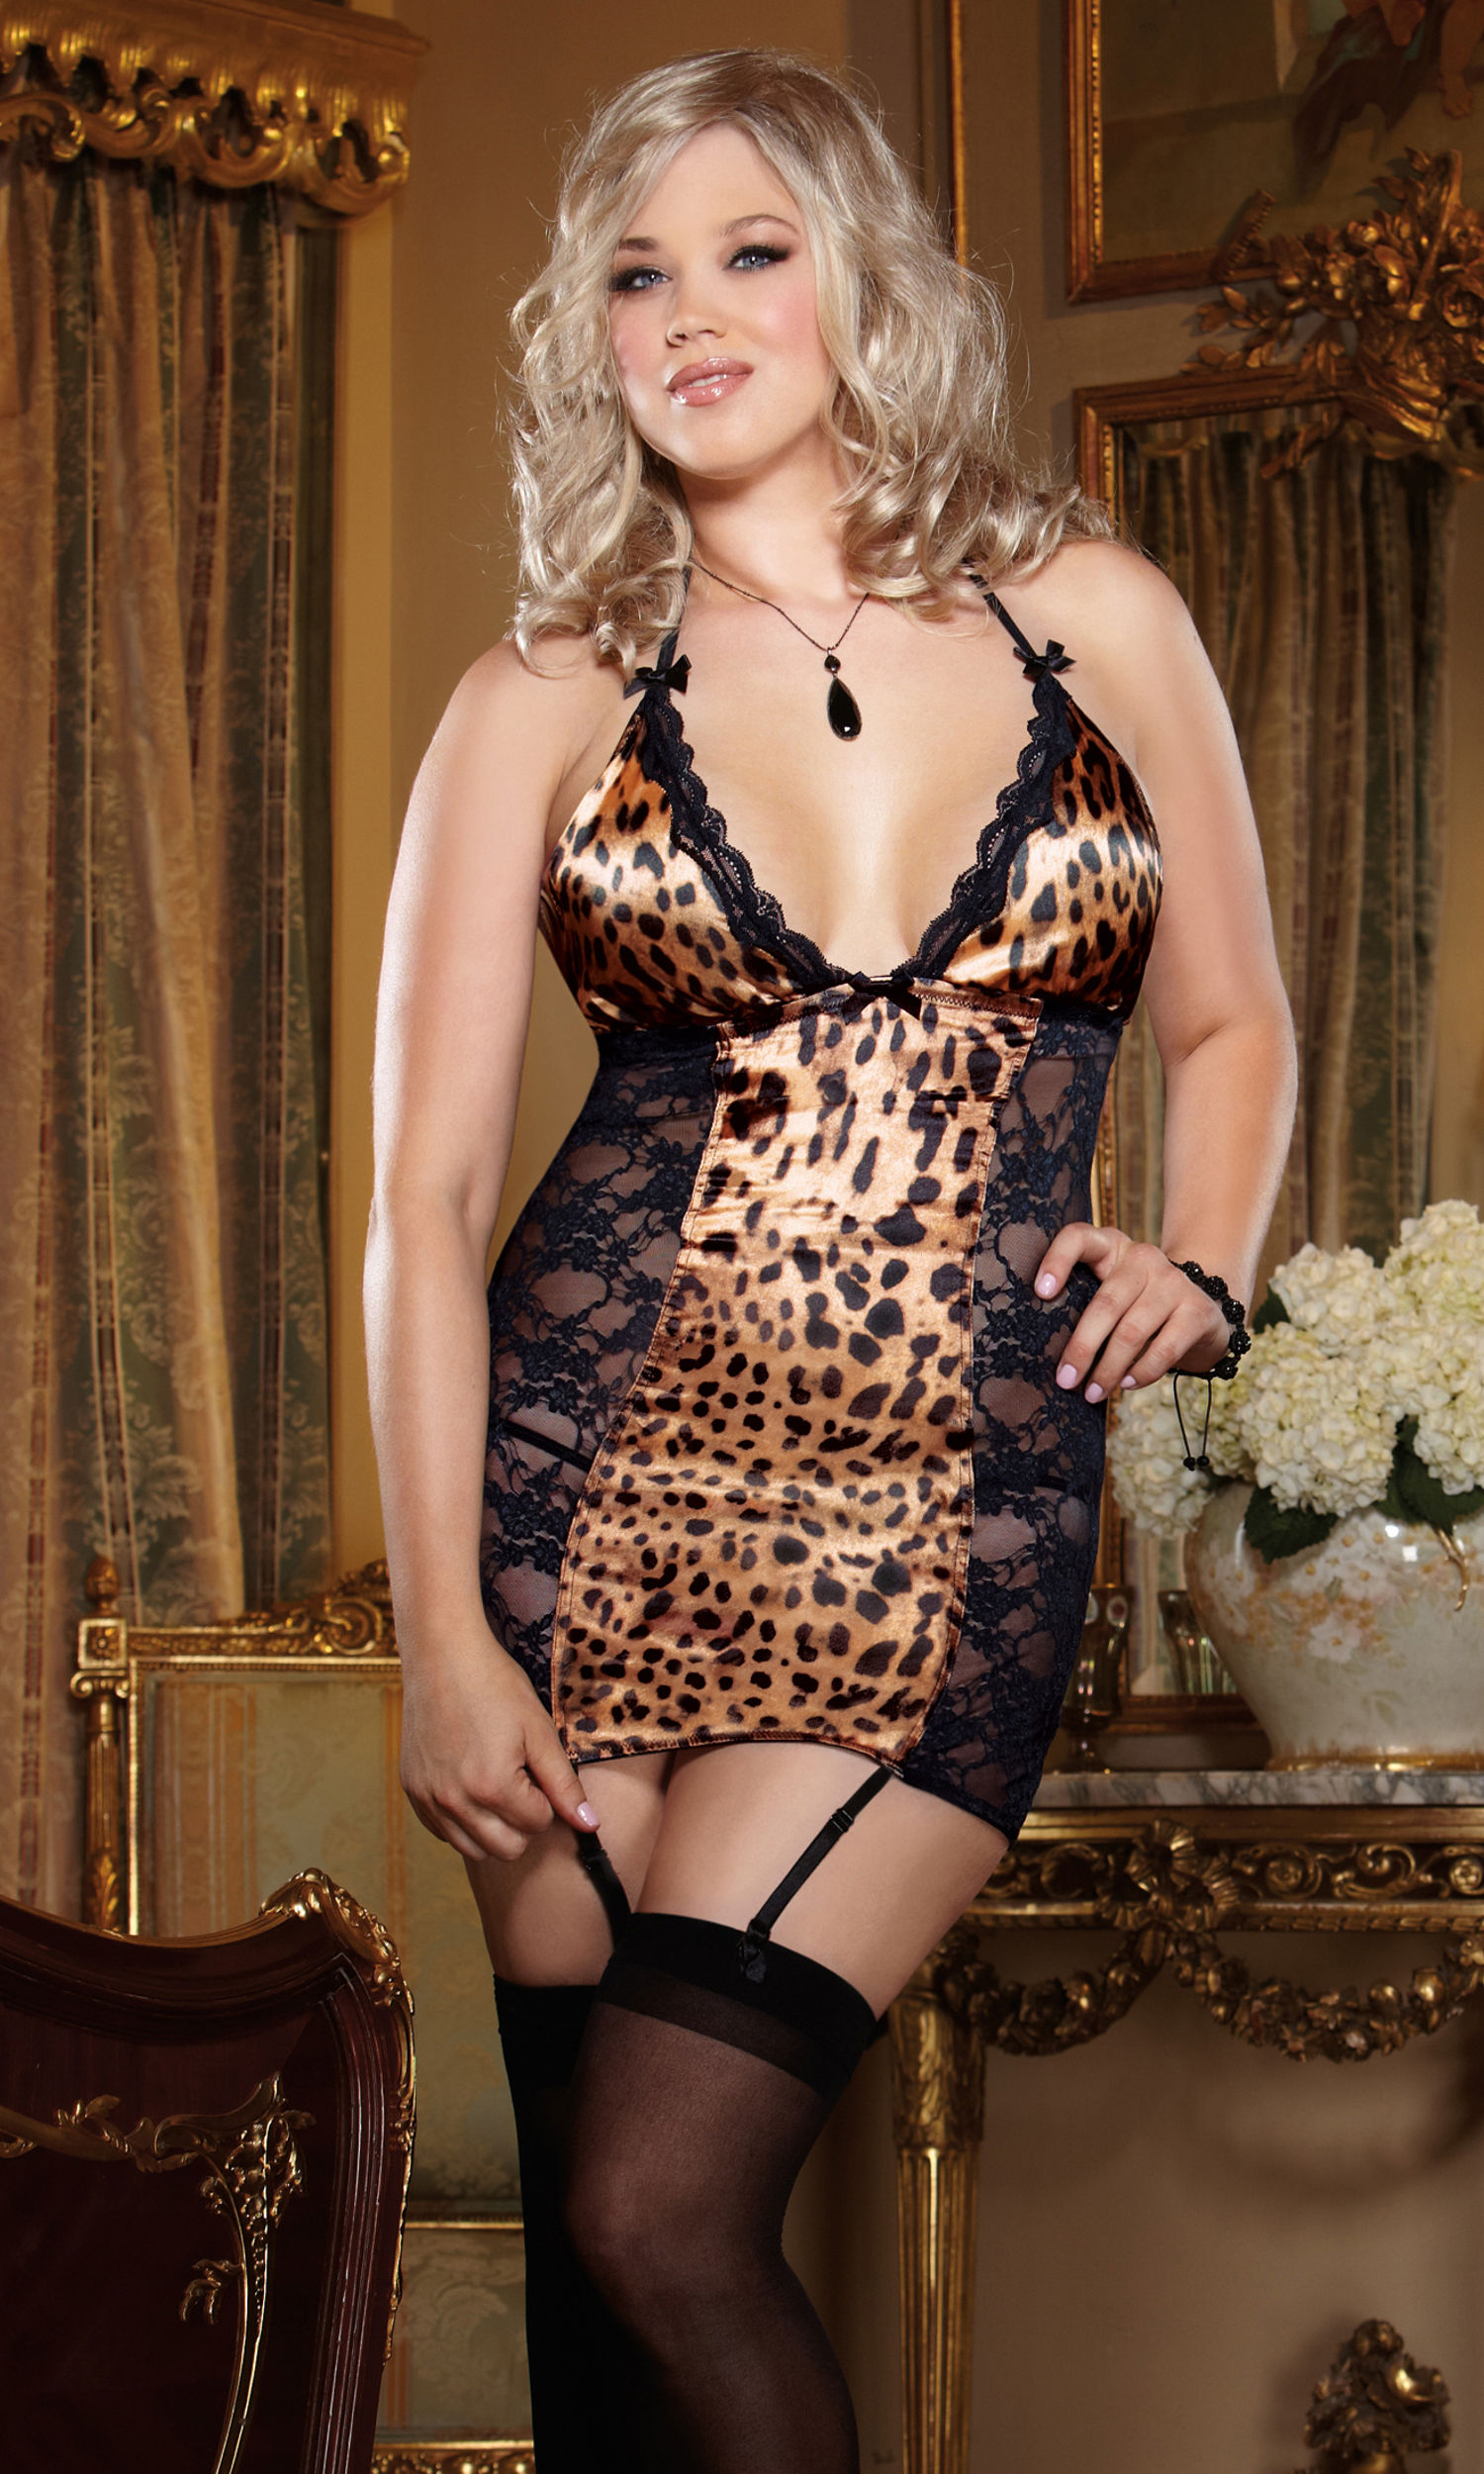 78a0ffefe23 Sexy Plus Size Lingerie